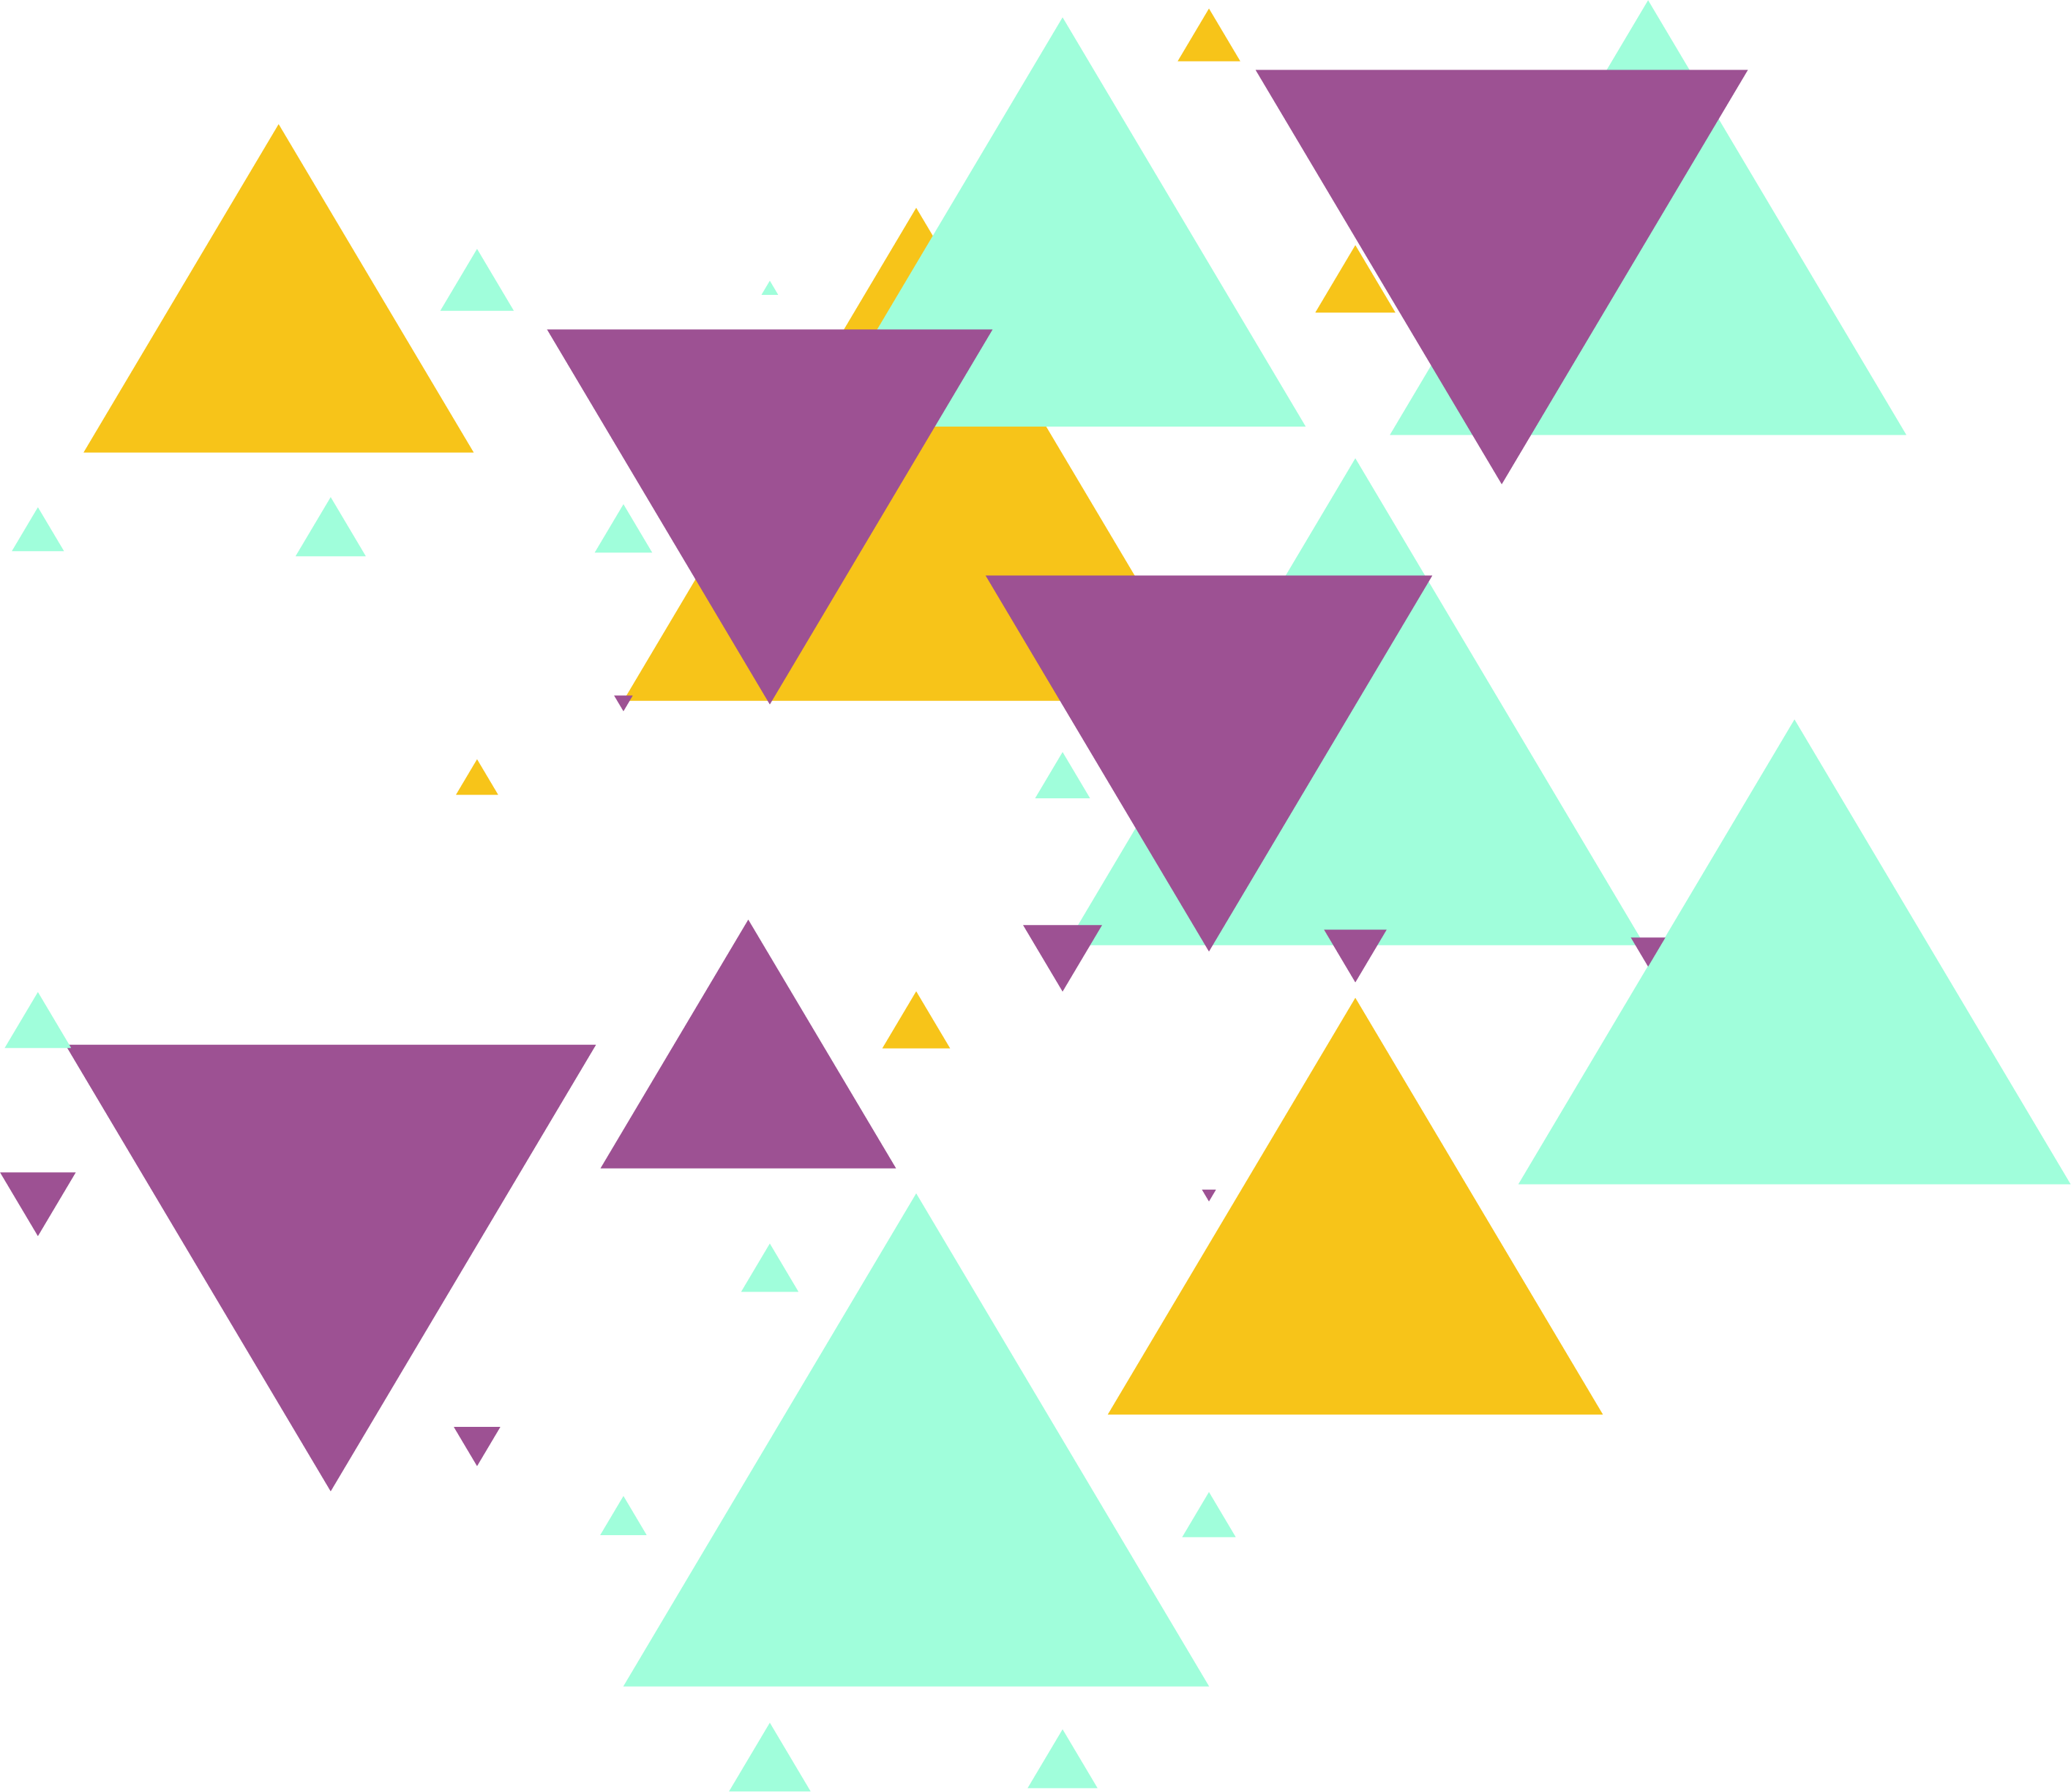 Free geometric shapes png. Triangle shape pattern color